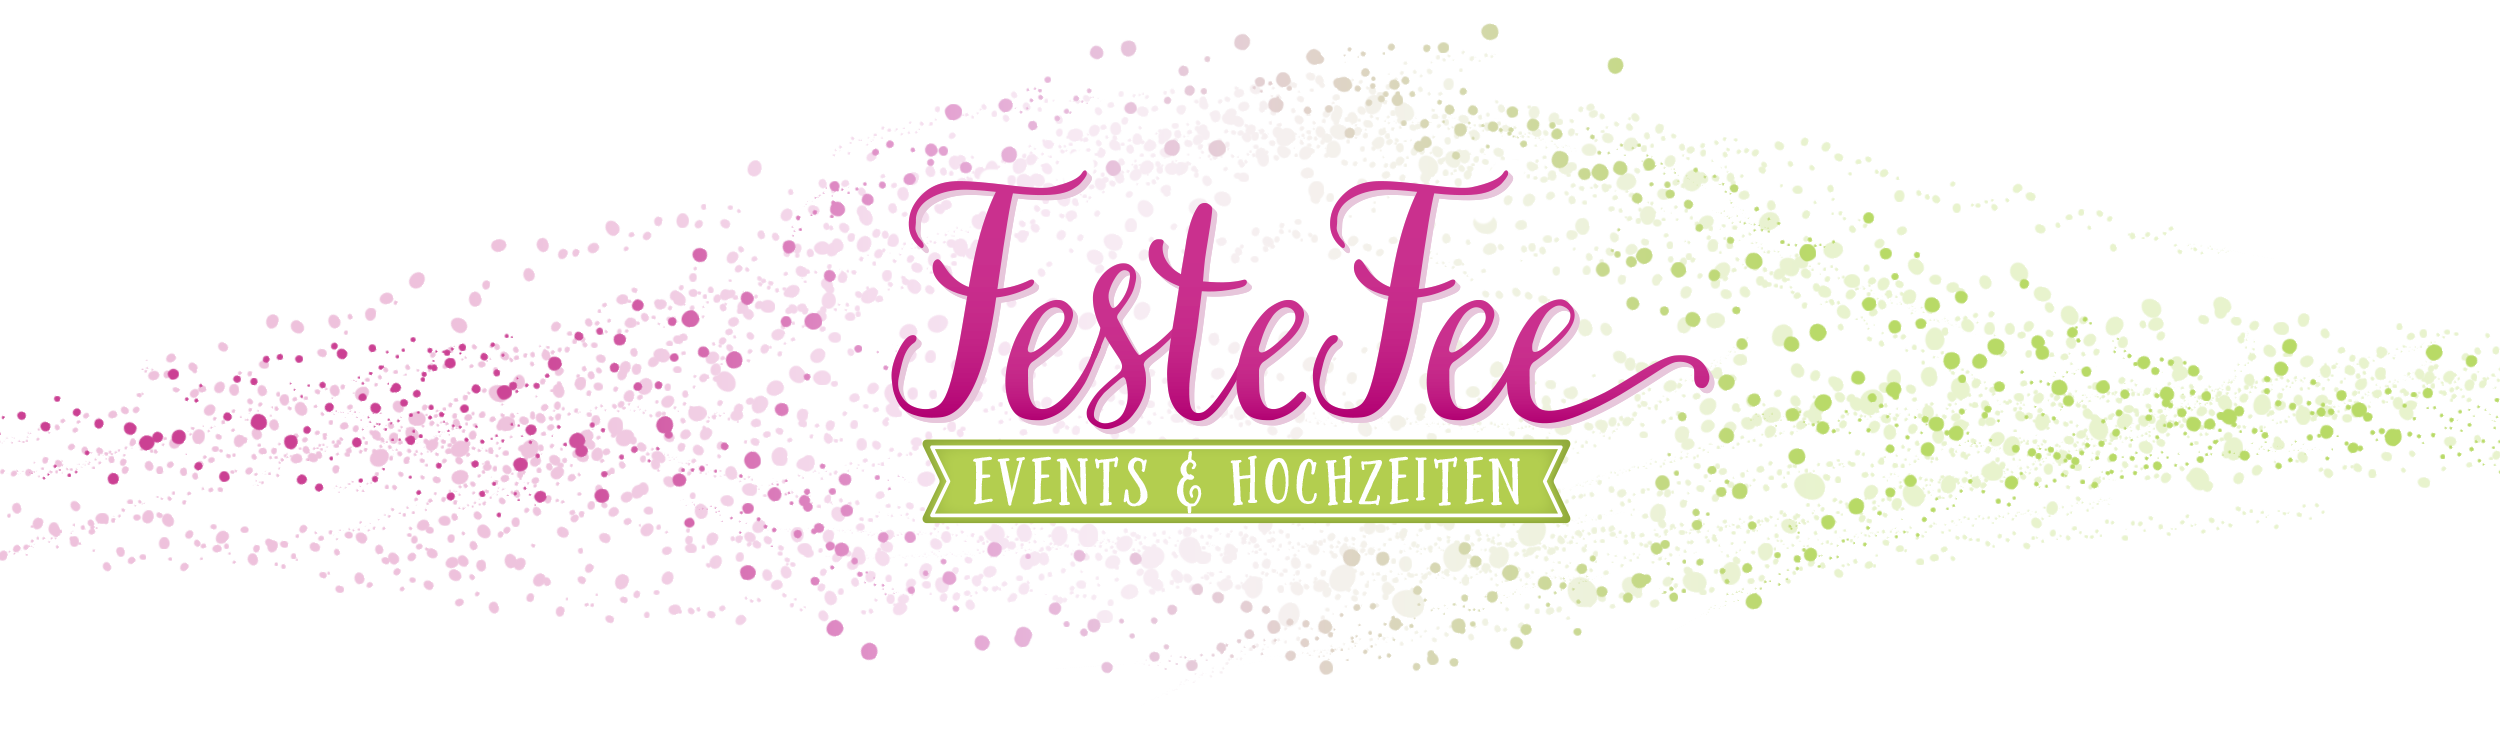 festefee.at